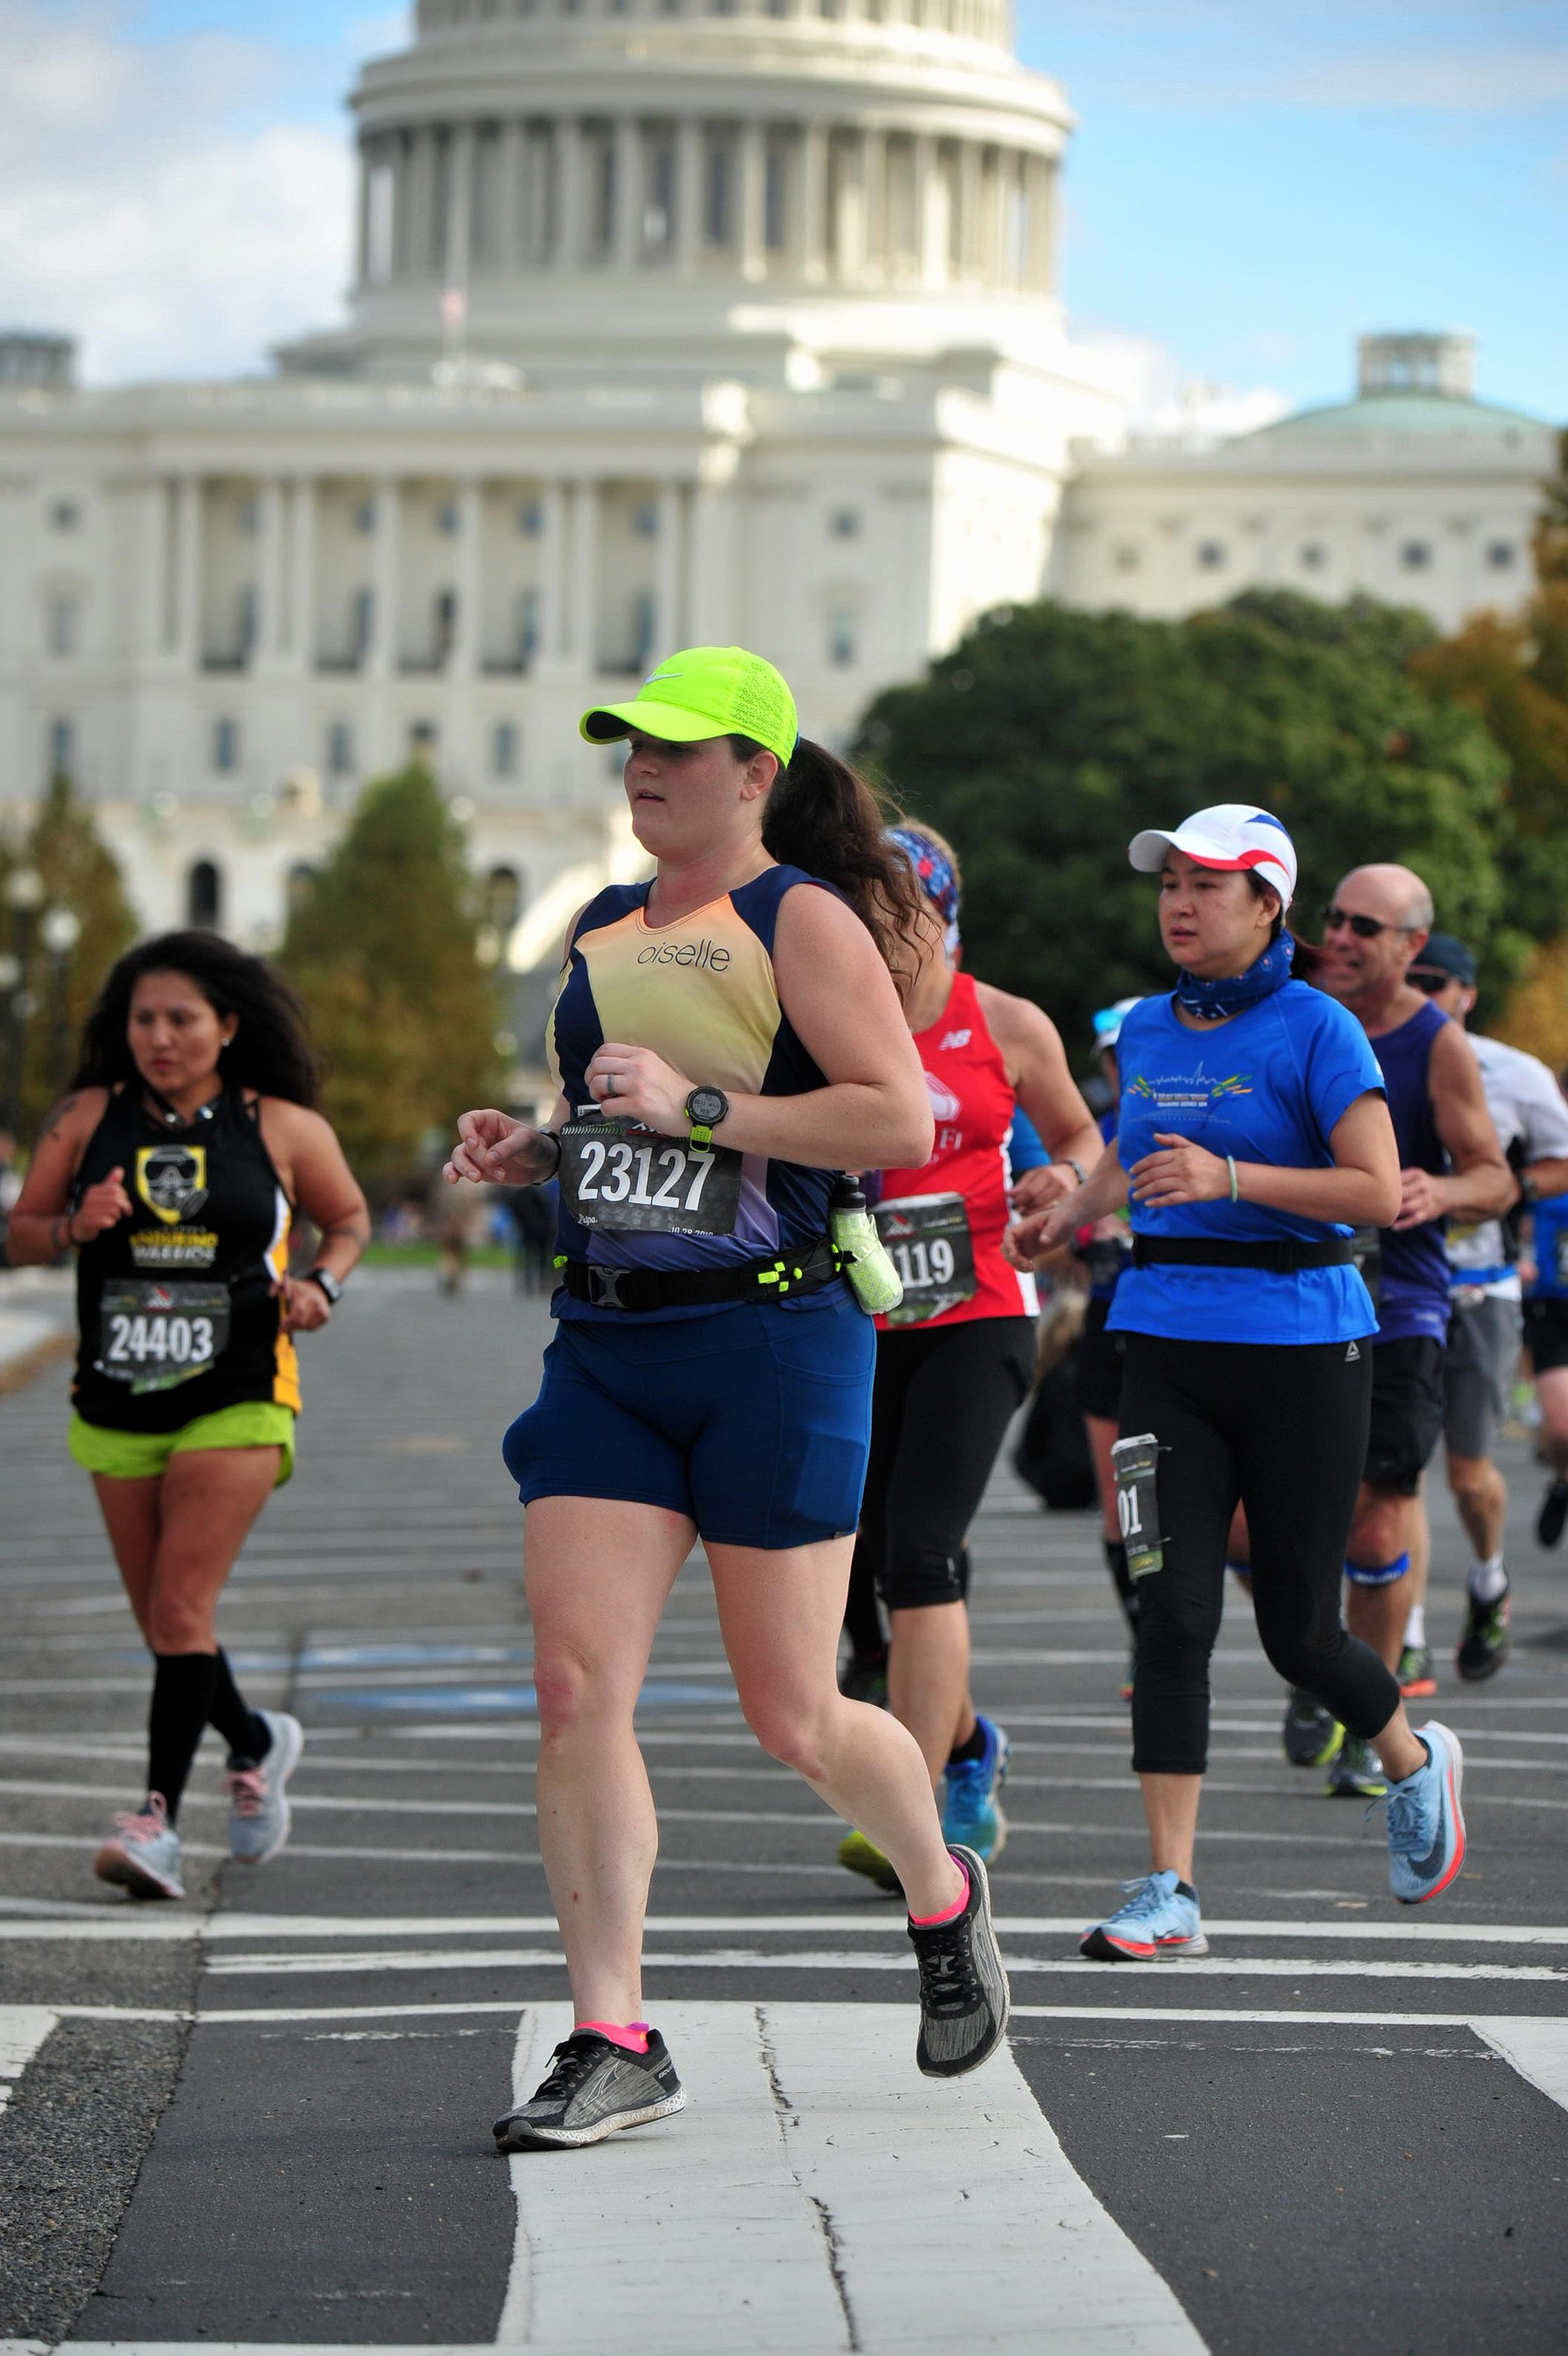 MCM photo outside the Capitol. I really regret putting my buff in my shorts pocket right about now. (photo purchased for use from Marathon Foto).